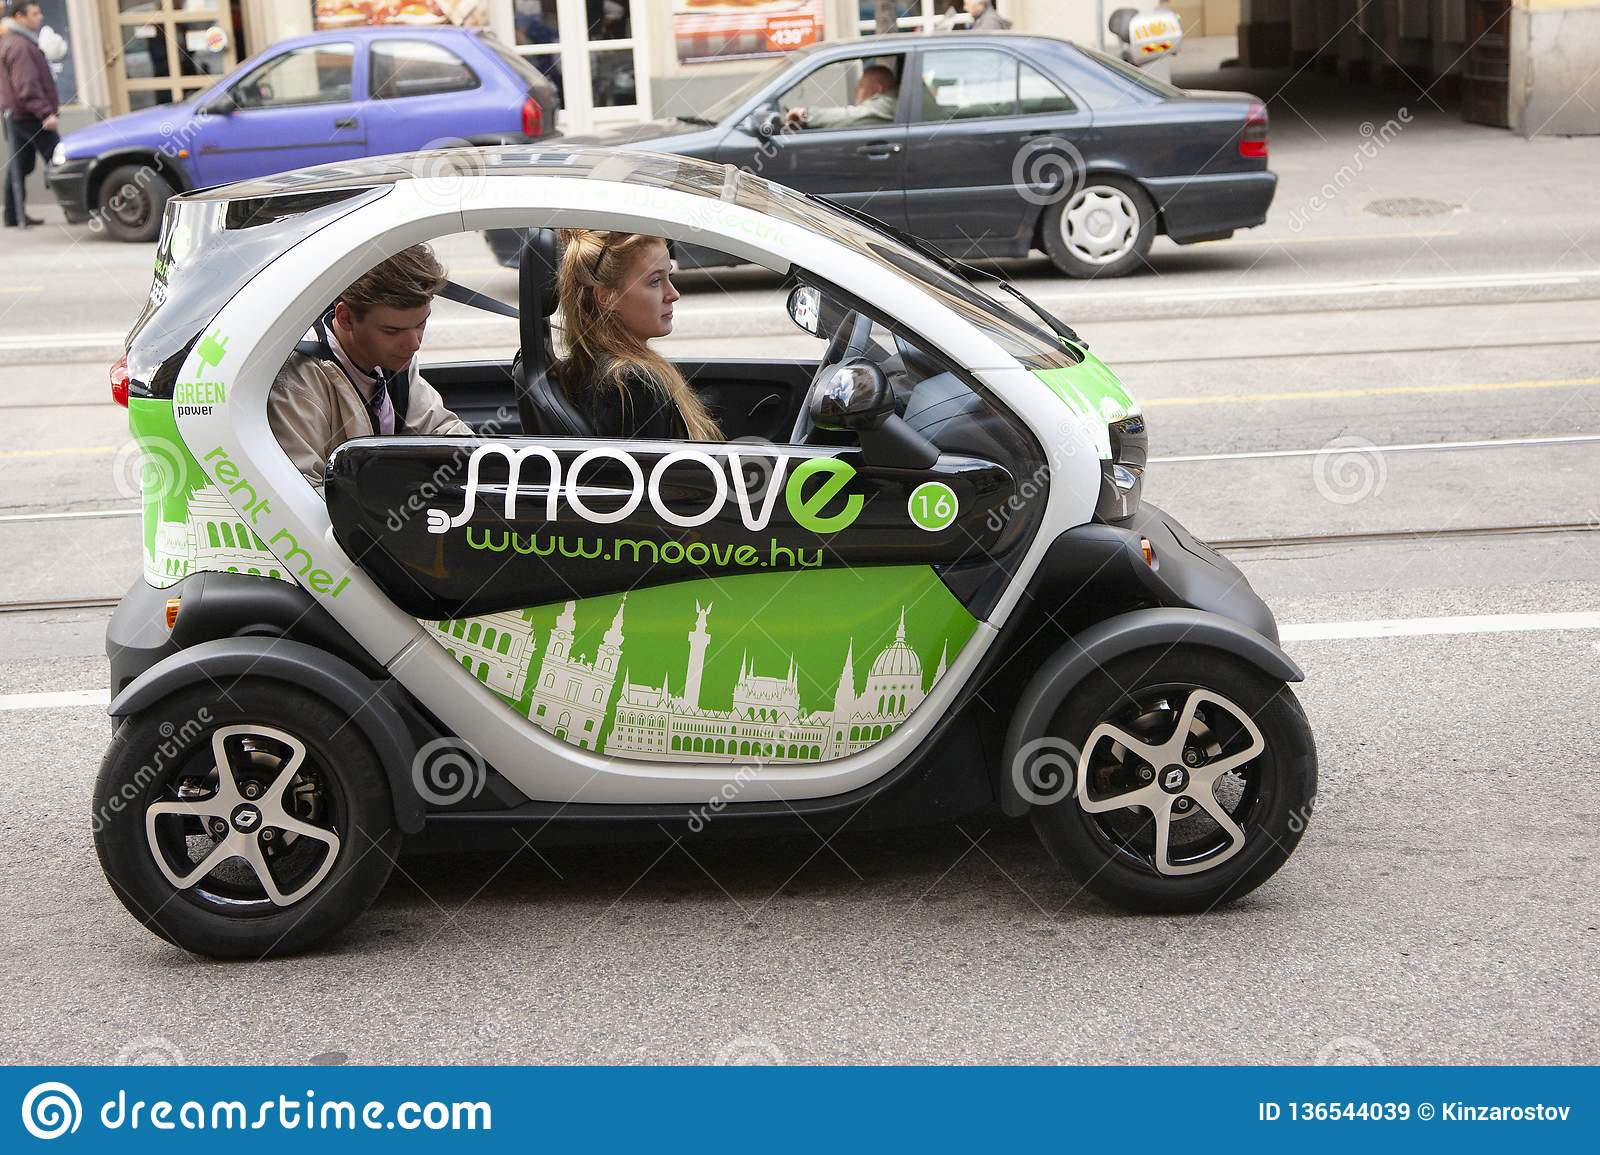 Budapest, Hungary - April 6, 2018: auto business, car sale and people concept